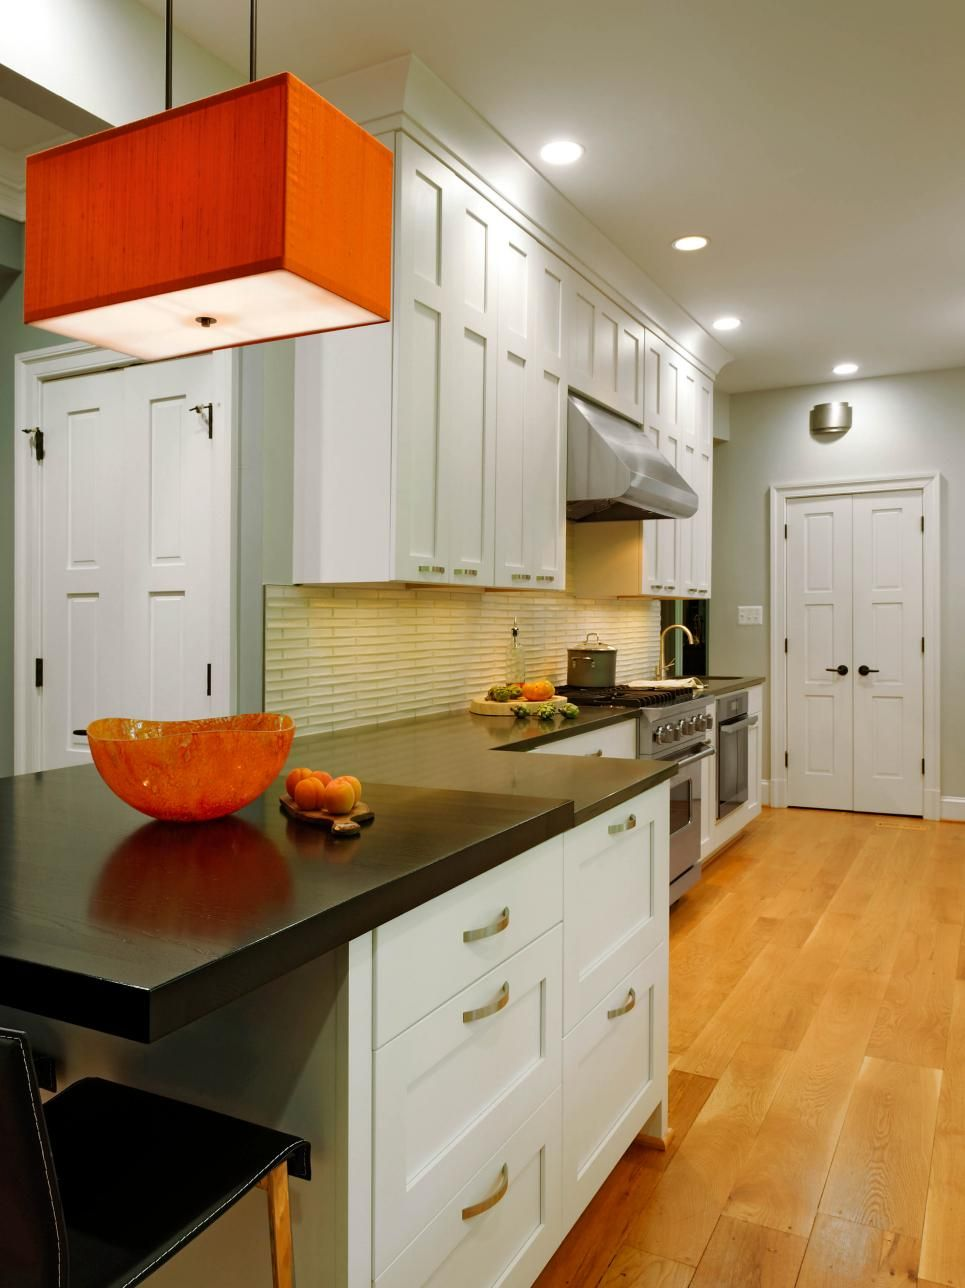 Pictures Of Small Kitchen Design Ideas From  Small Kitchen Stunning Remodel Small Kitchen Ideas Design Inspiration